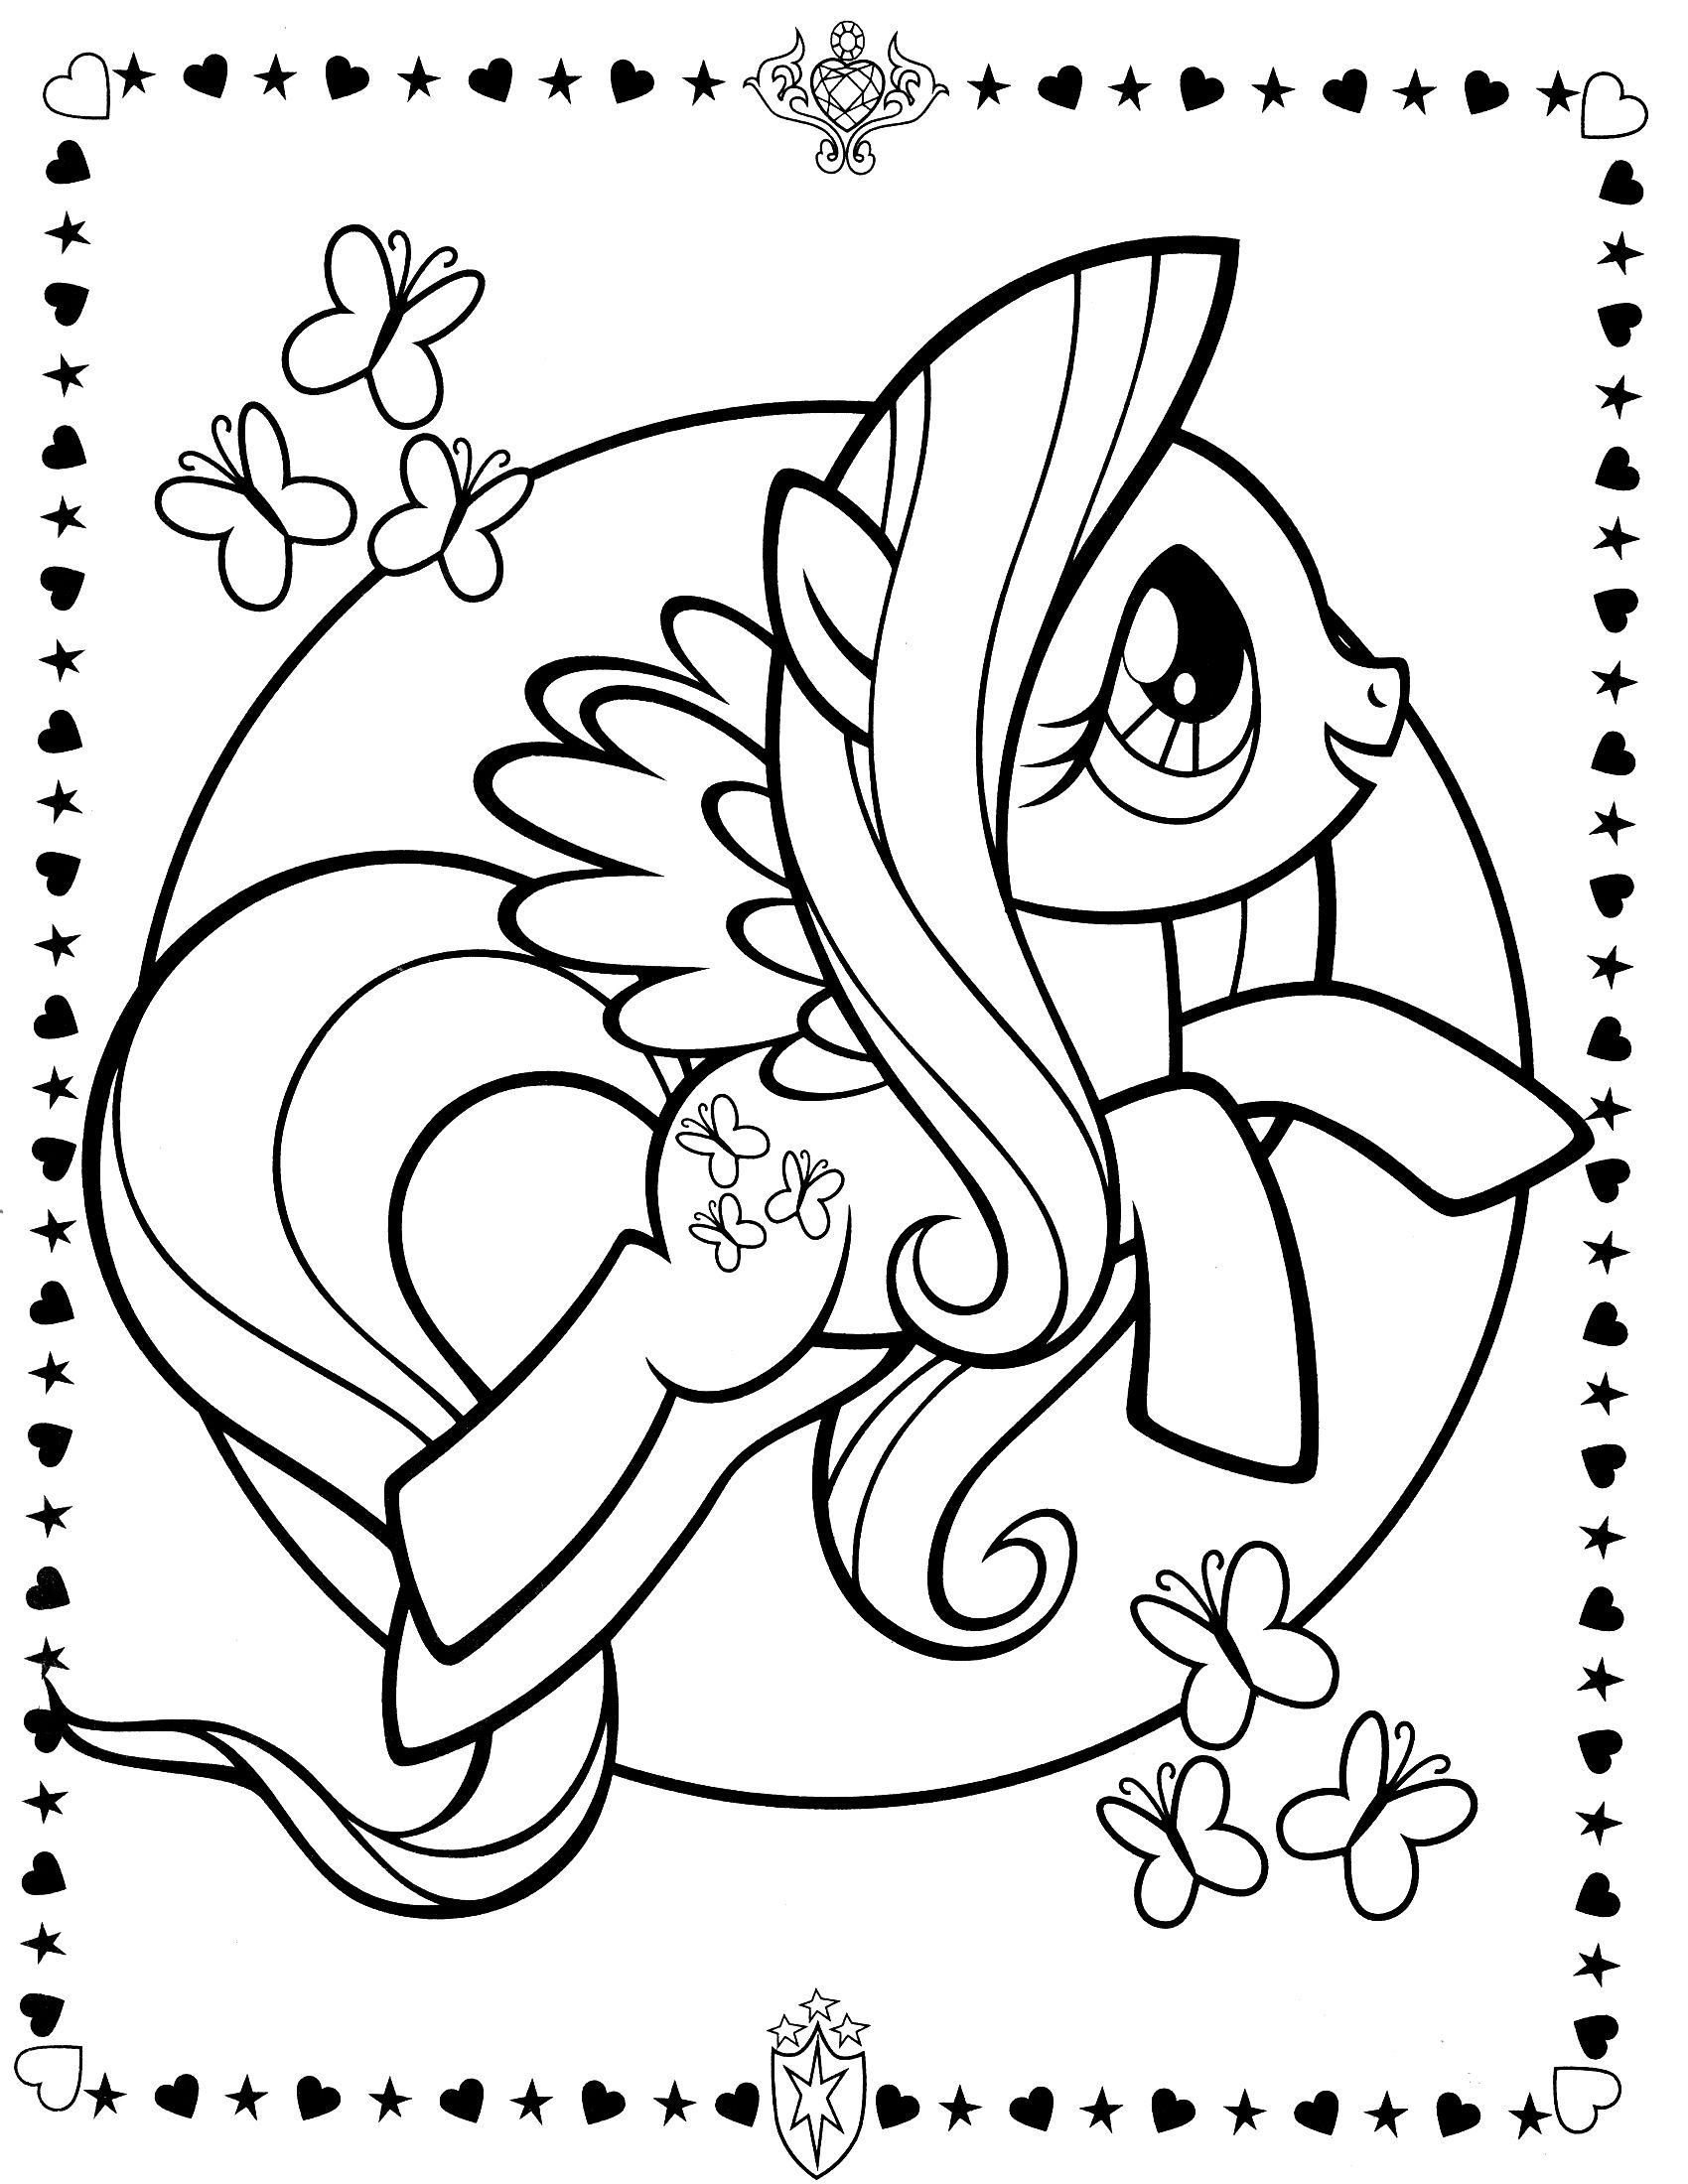 Awesome My Little Pony Coloring Pages Of Fluttershy That You Must Know You Re In Good Company If In 2020 My Little Pony Coloring Unicorn Coloring Pages Coloring Pages